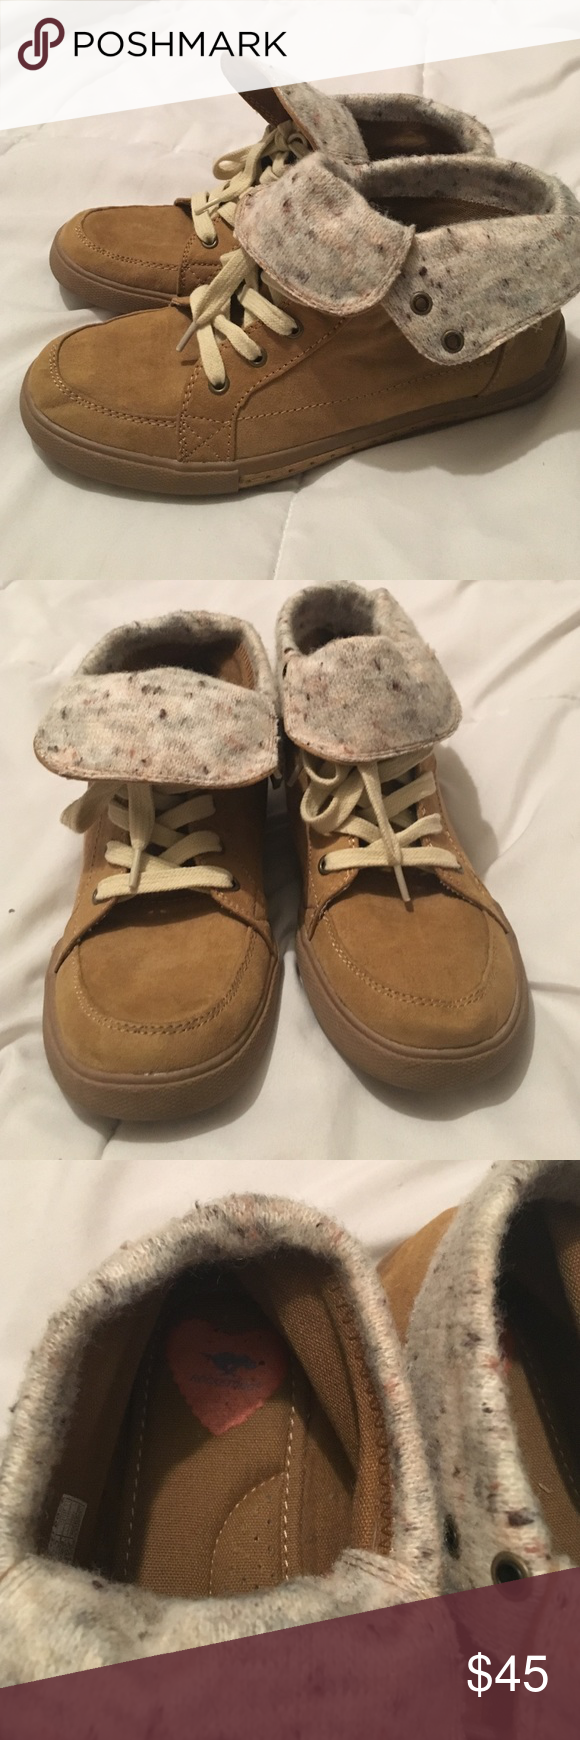 Size 7 Rocket Dog shoes! Super Trendy! Worn only once. Super cute tan Rocket Dog shoes! Just have too many shoes and need to down size. Rocket Dog Shoes Ankle Boots & Booties